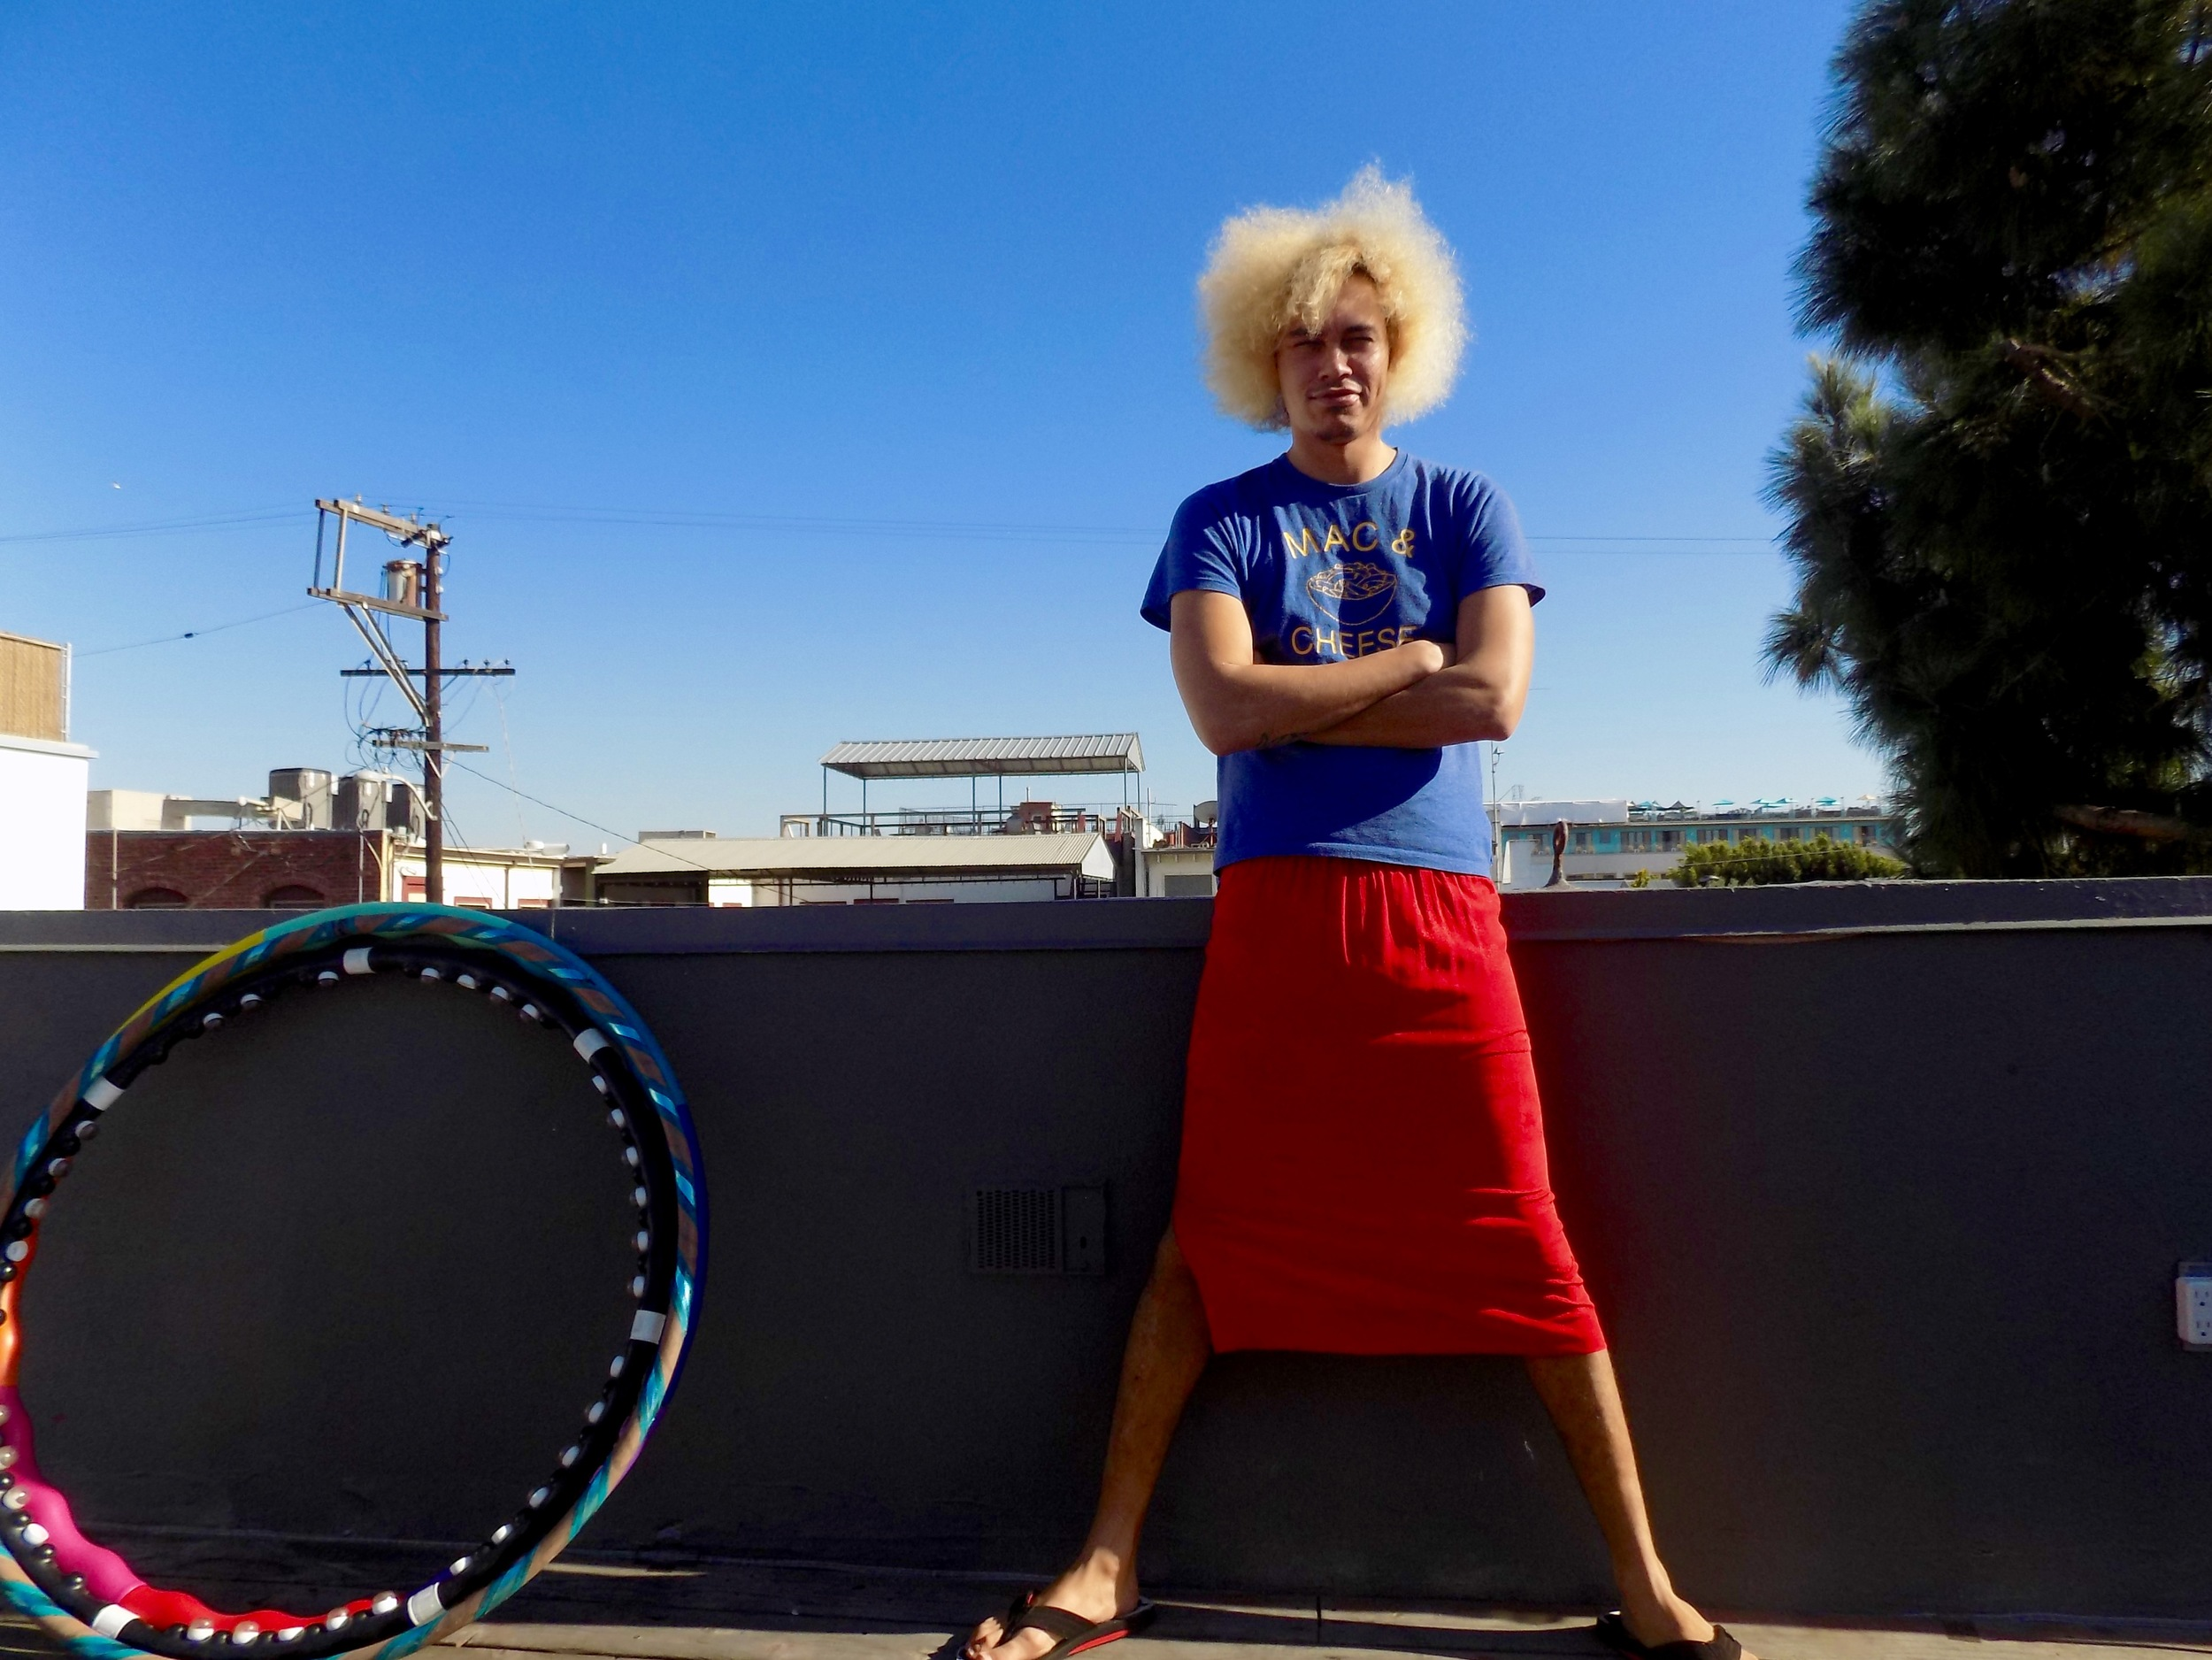 Men in Skirts, by Venice-based author Nika Cavat, explores what happens to fashion, and other things, when they are adopted into an upscale economic environment.